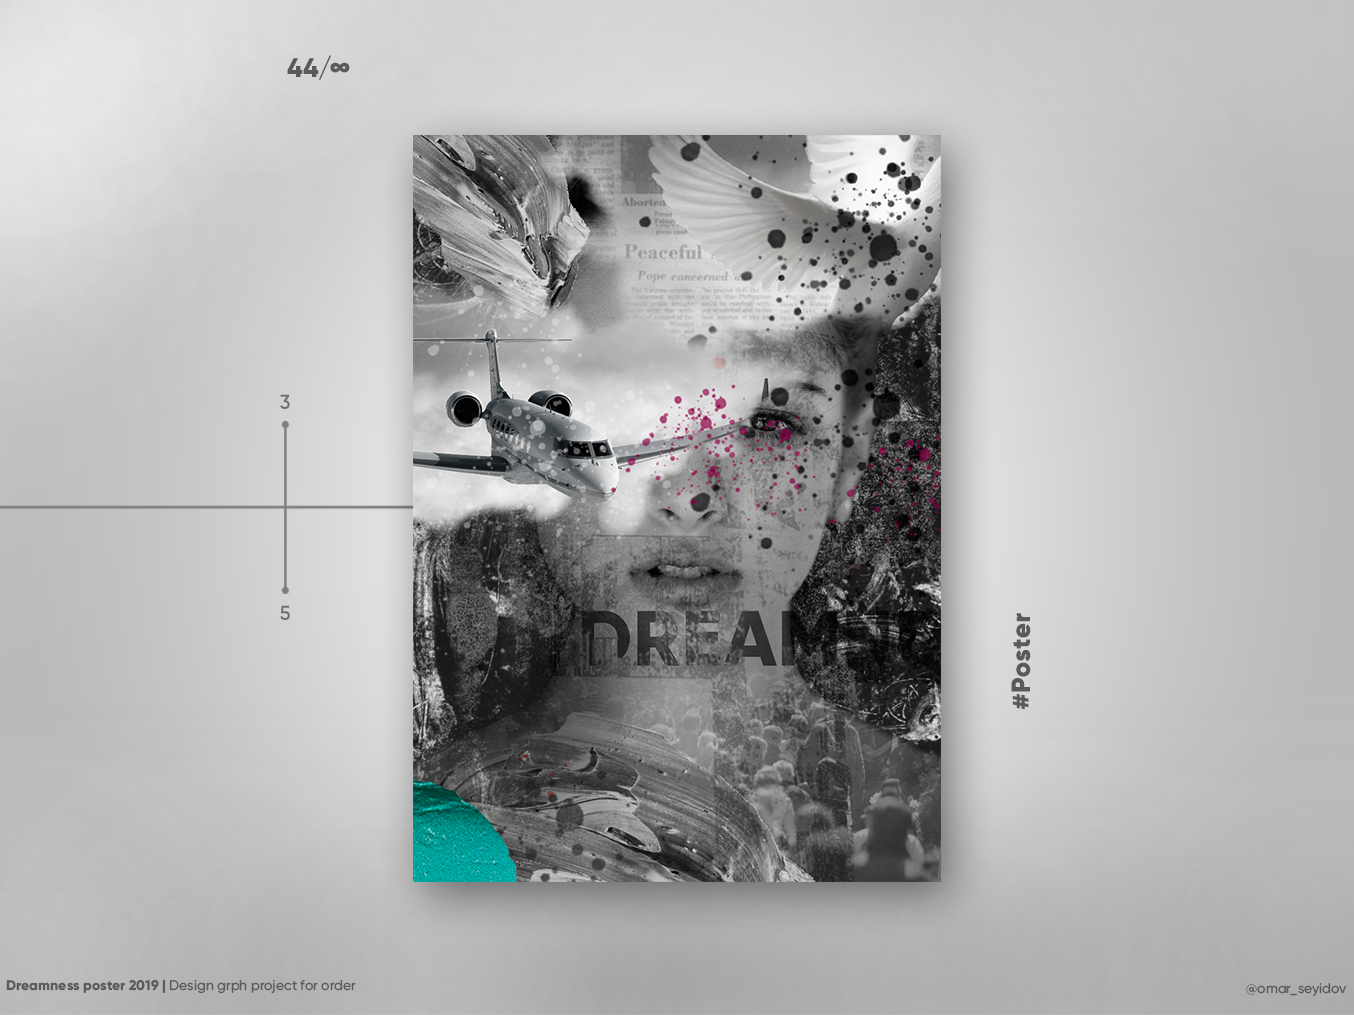 Dreamness adobe camera raw accurate poster texture simple black and gold icon first graphic art logo photoshop background abstract vector branding adobe typography illustration design